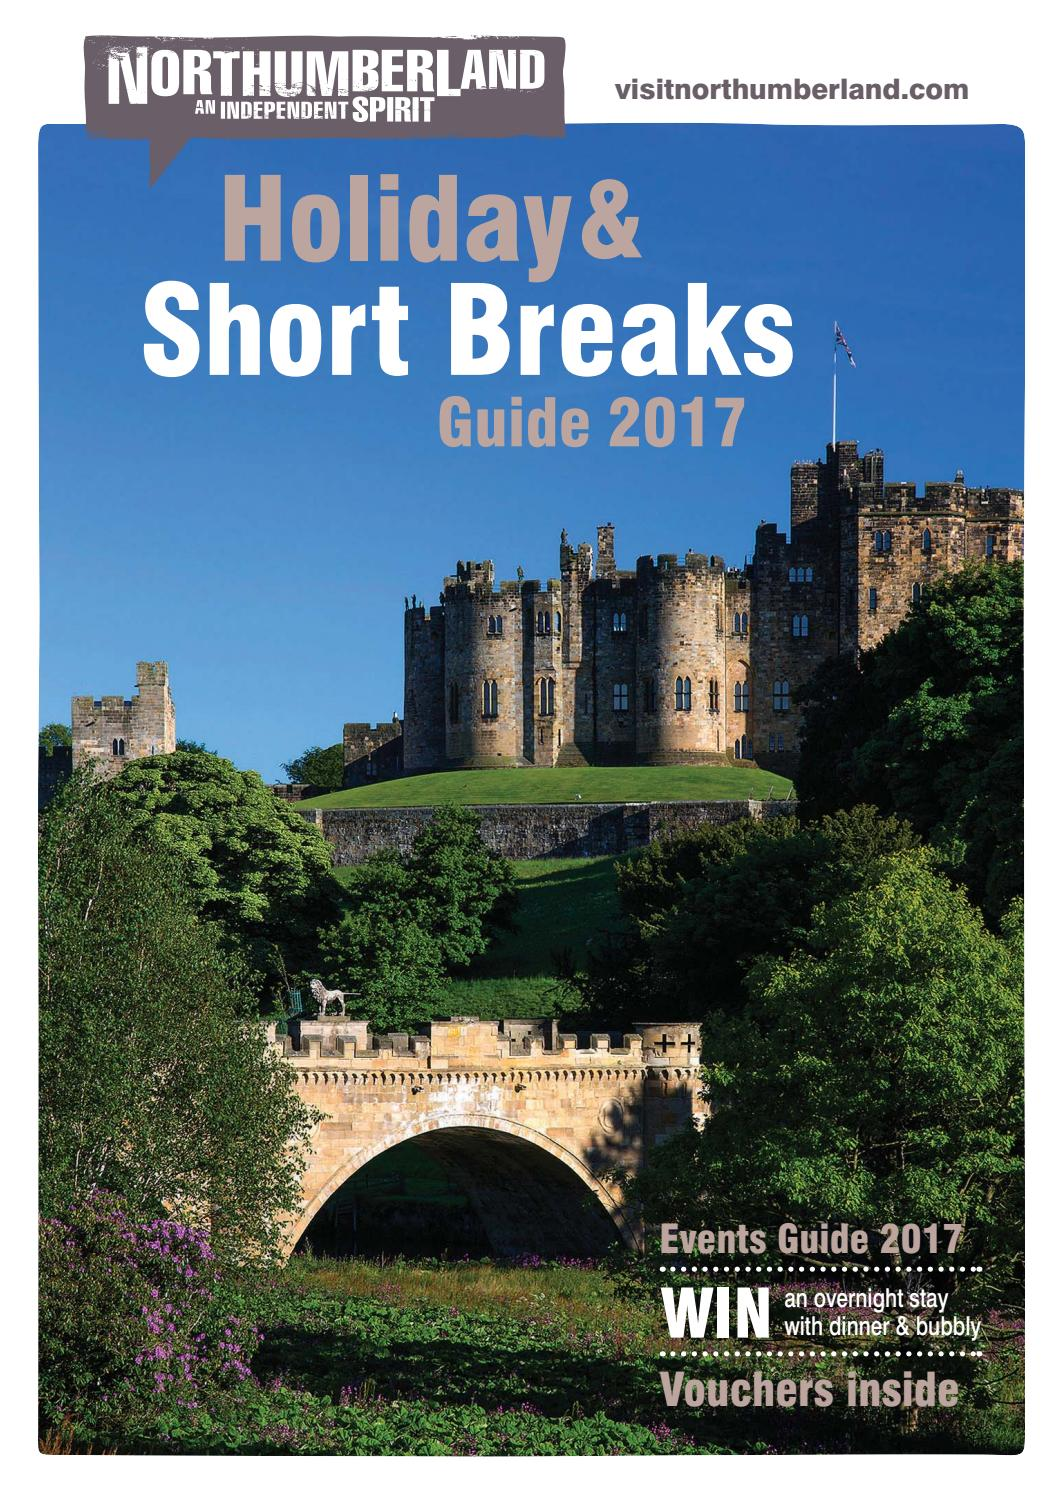 Northumberland Holiday and Short Breaks Guide 2017 by